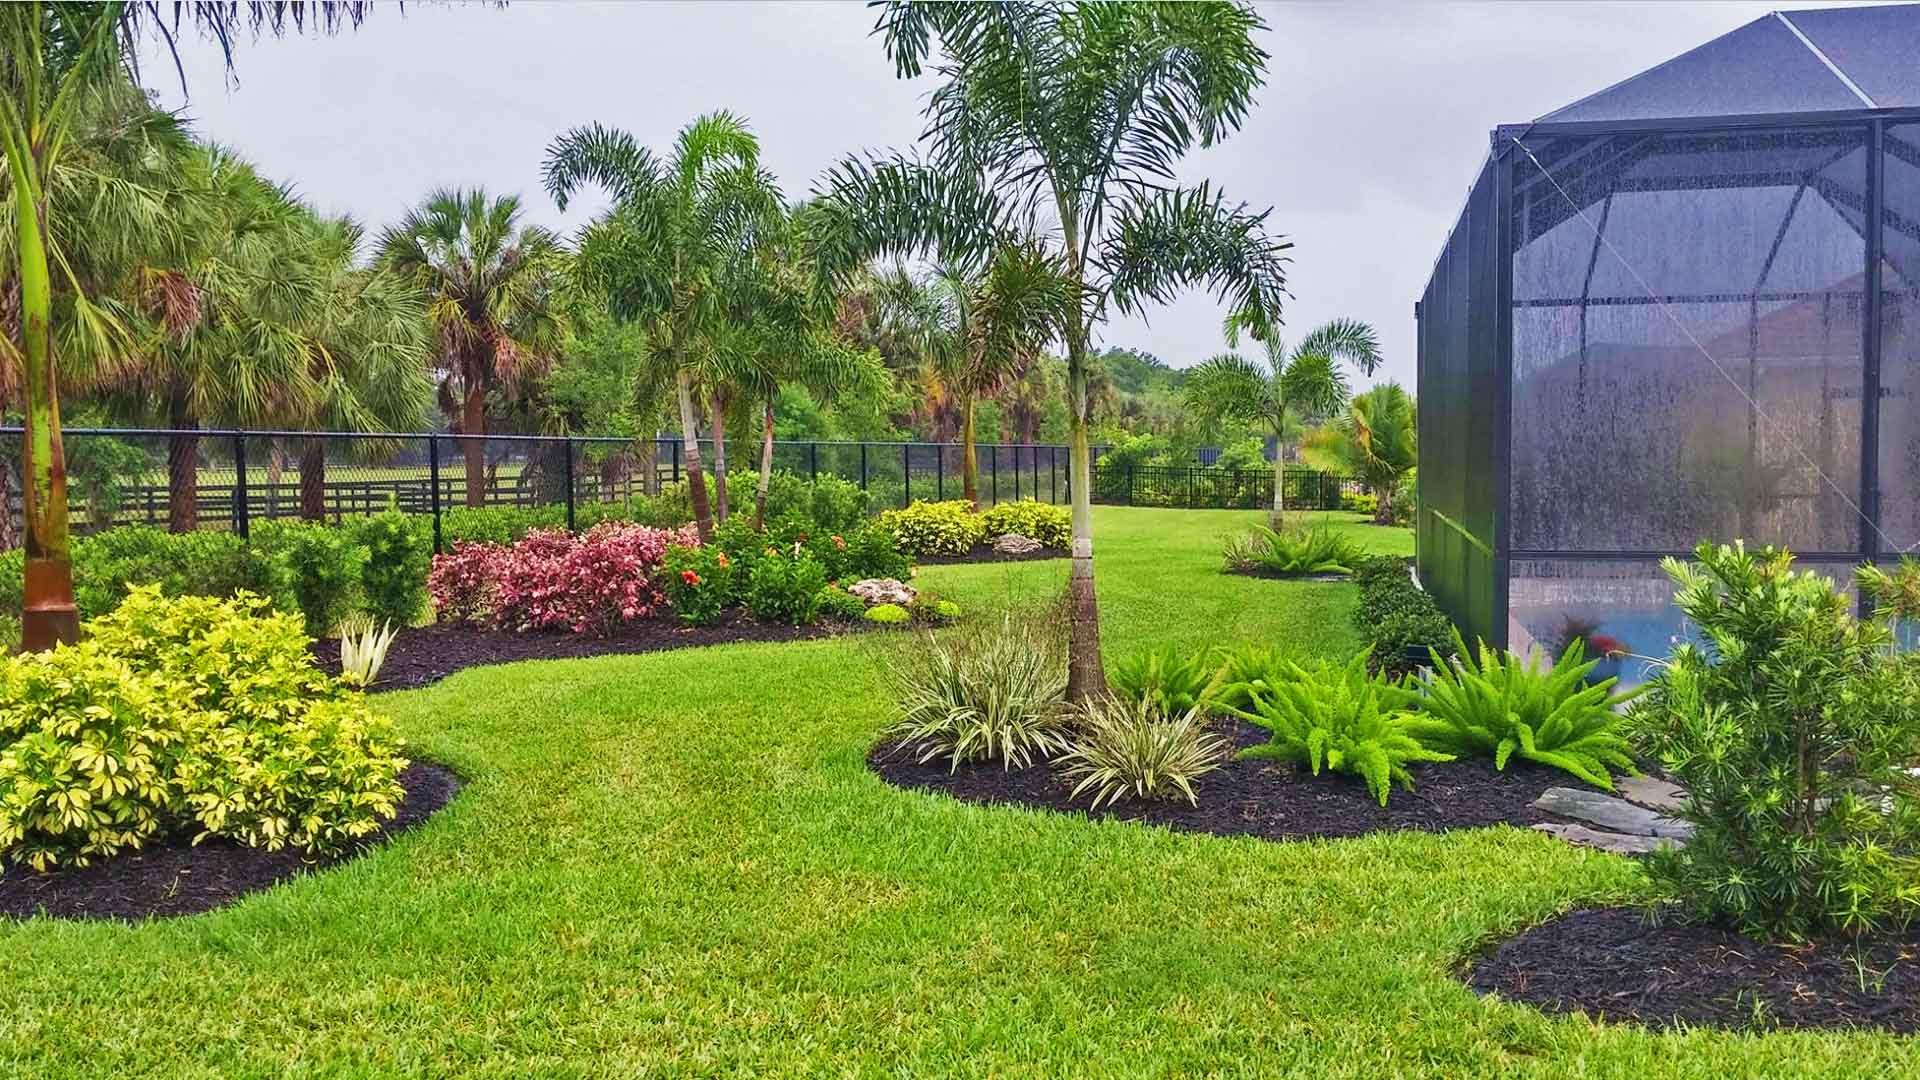 Blog For Lawn Maintenance Landscaping Hardscaping In Palmetto Fl